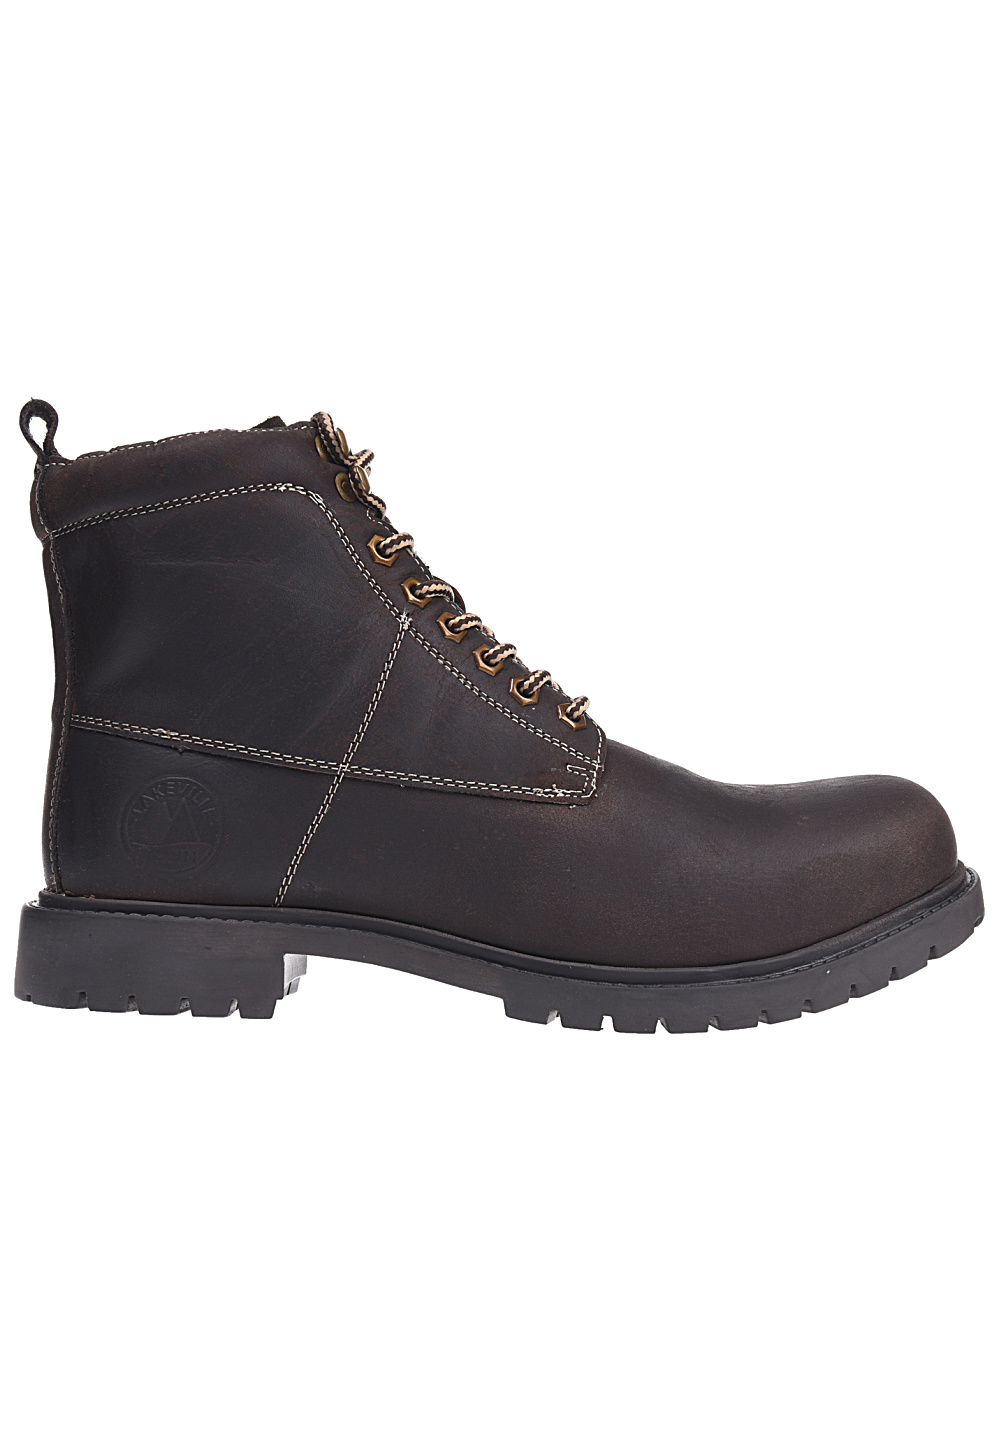 Lakeville Mountain Koussi - Bottines pour Homme - Marron